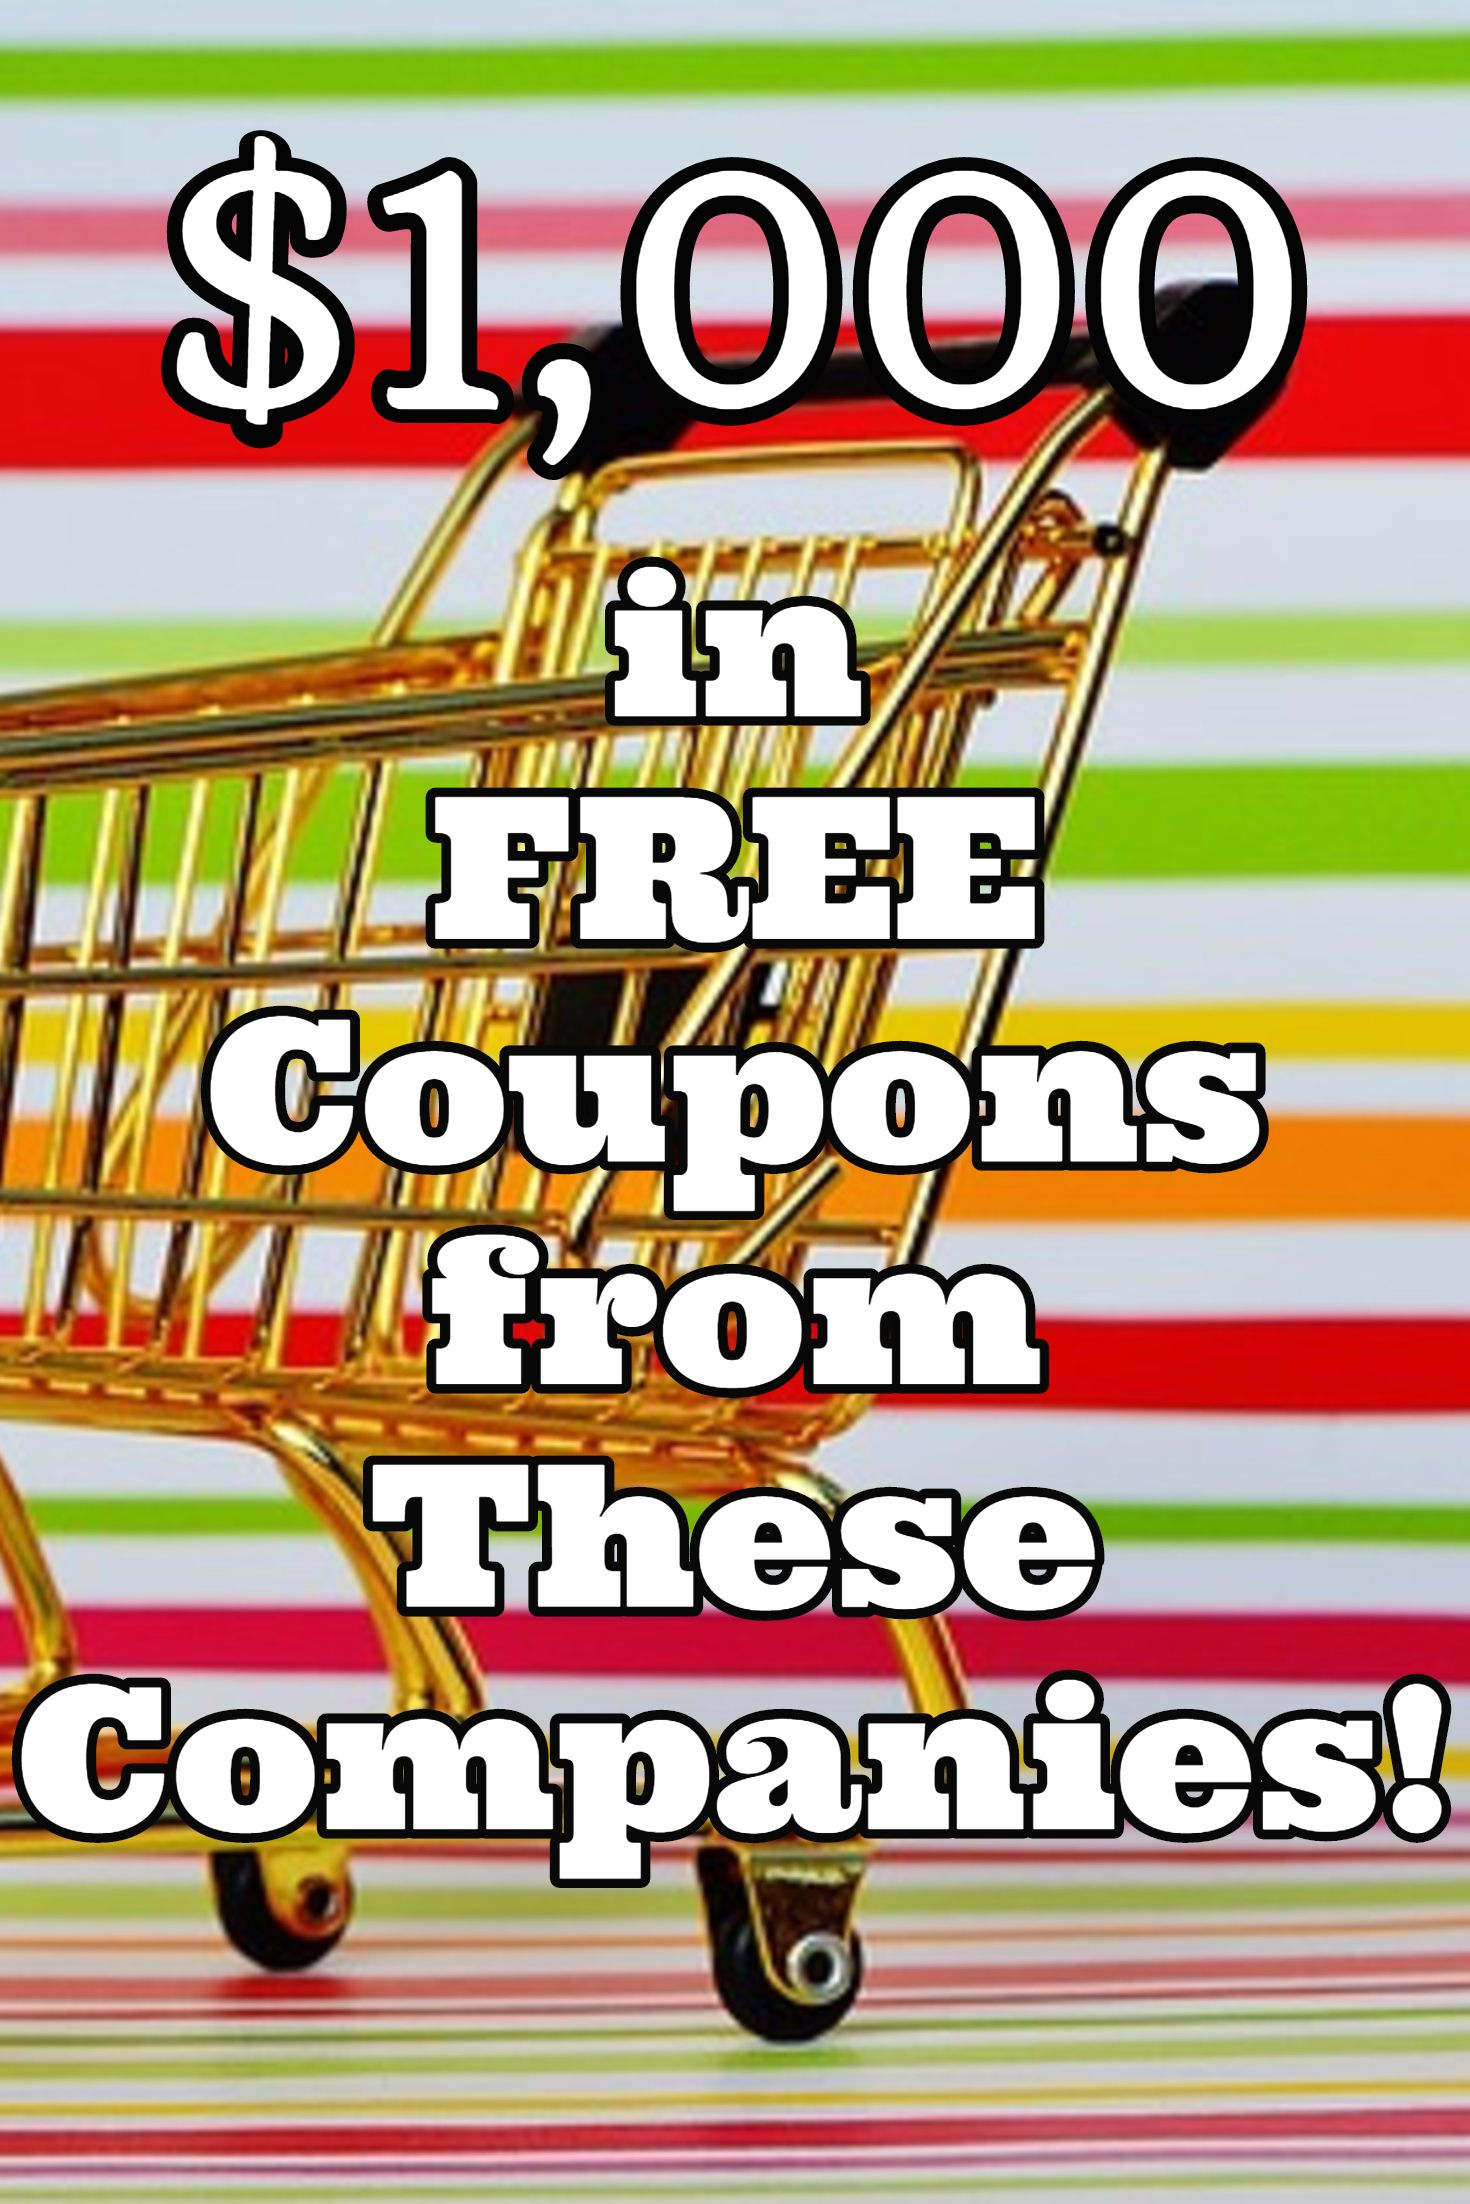 "20 items you can get for free with coupons | 20"", tips and coupon"